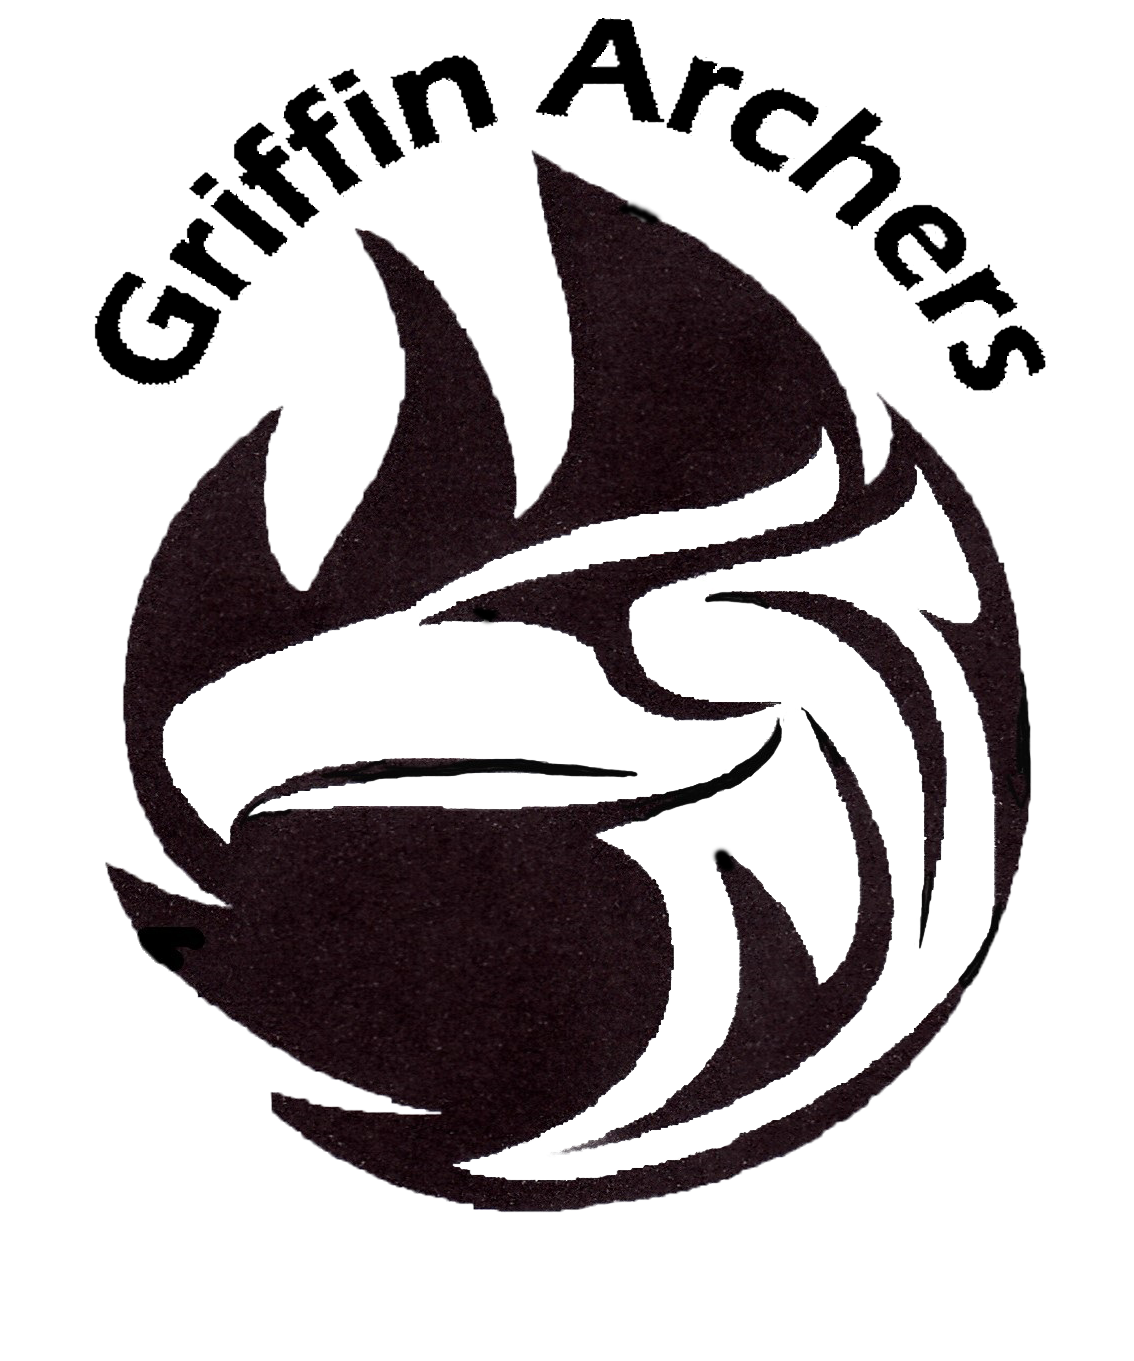 Griffin Archers of Peterborough